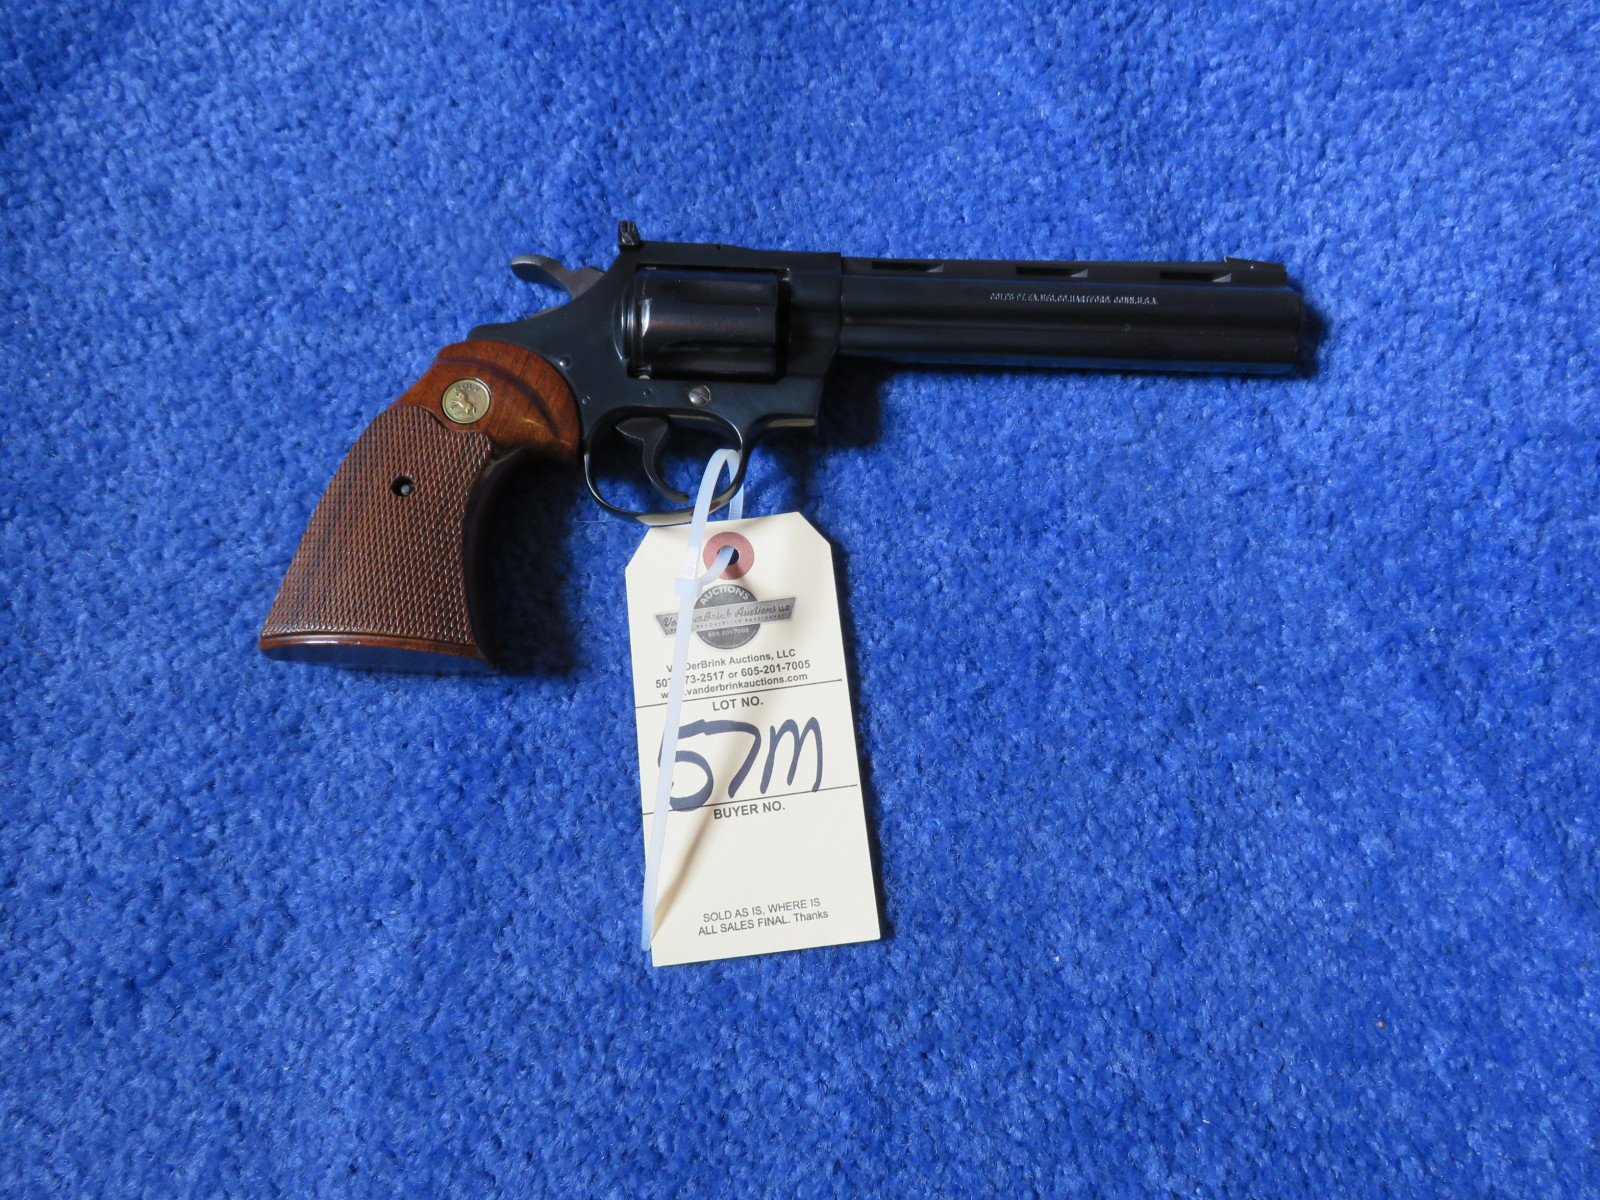 Colt Diamond Back .22 Revolver - Image 2